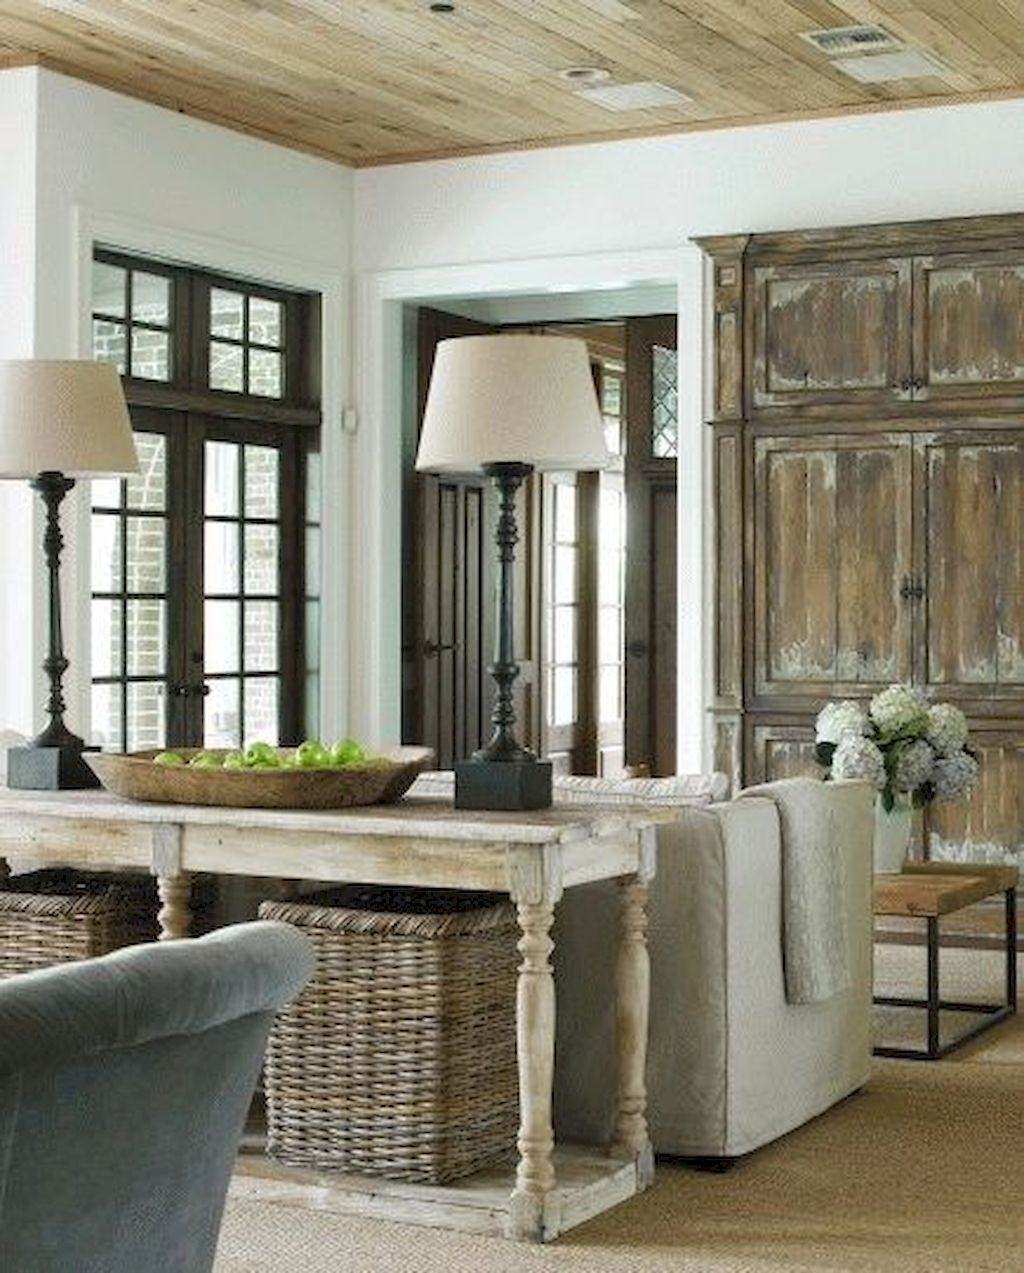 Pin By Sheila Clark On Favorite Places Spaces In 2018 Wohnzimmer